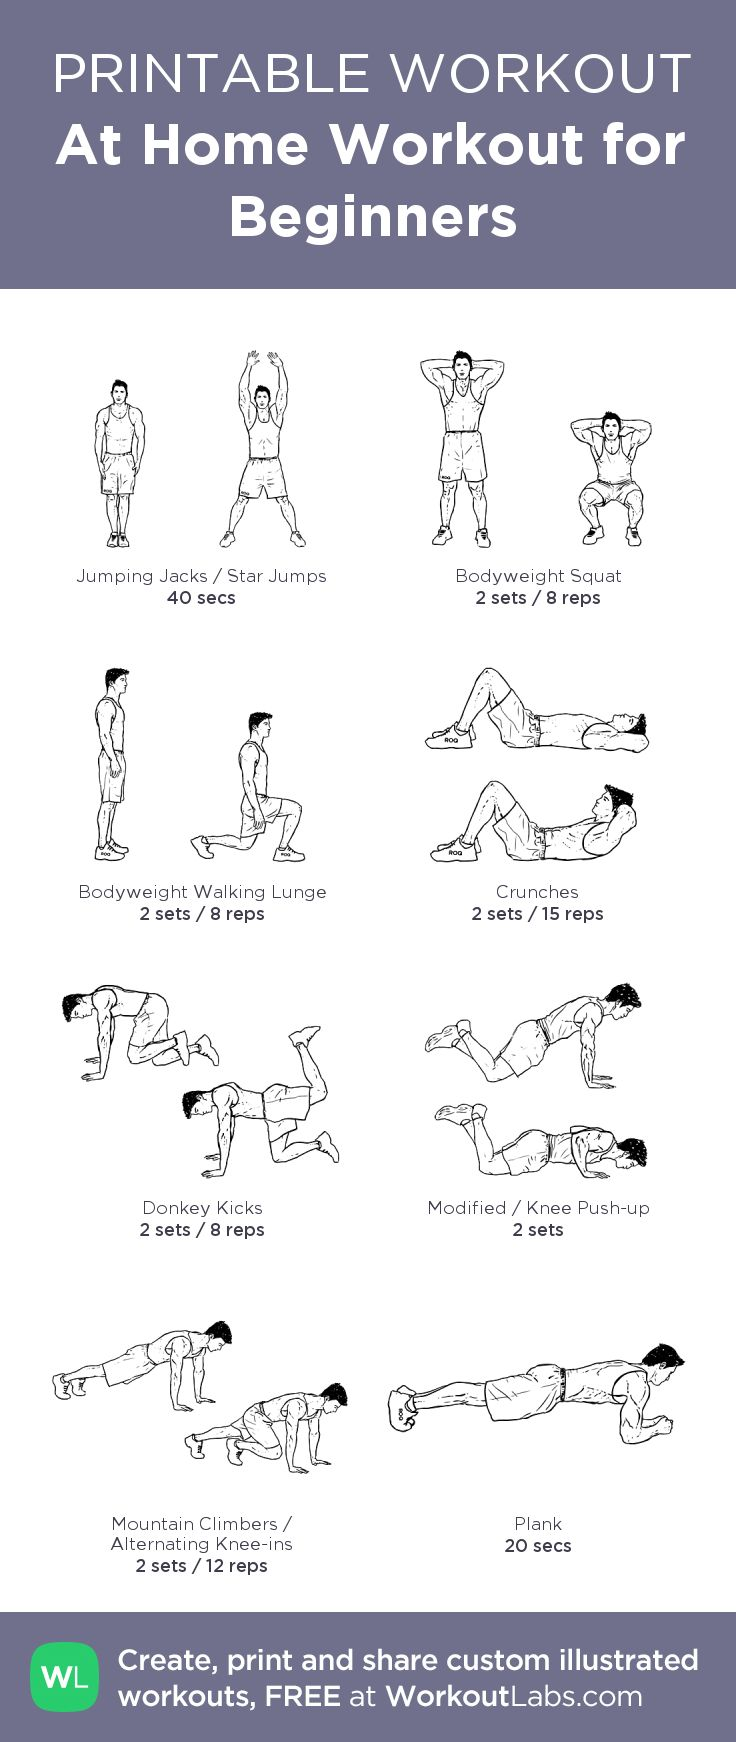 At Home Workout for Beginners: my visual workout created at WorkoutLabs.com • Click through to customize and download as a FREE PDF! #customworkout